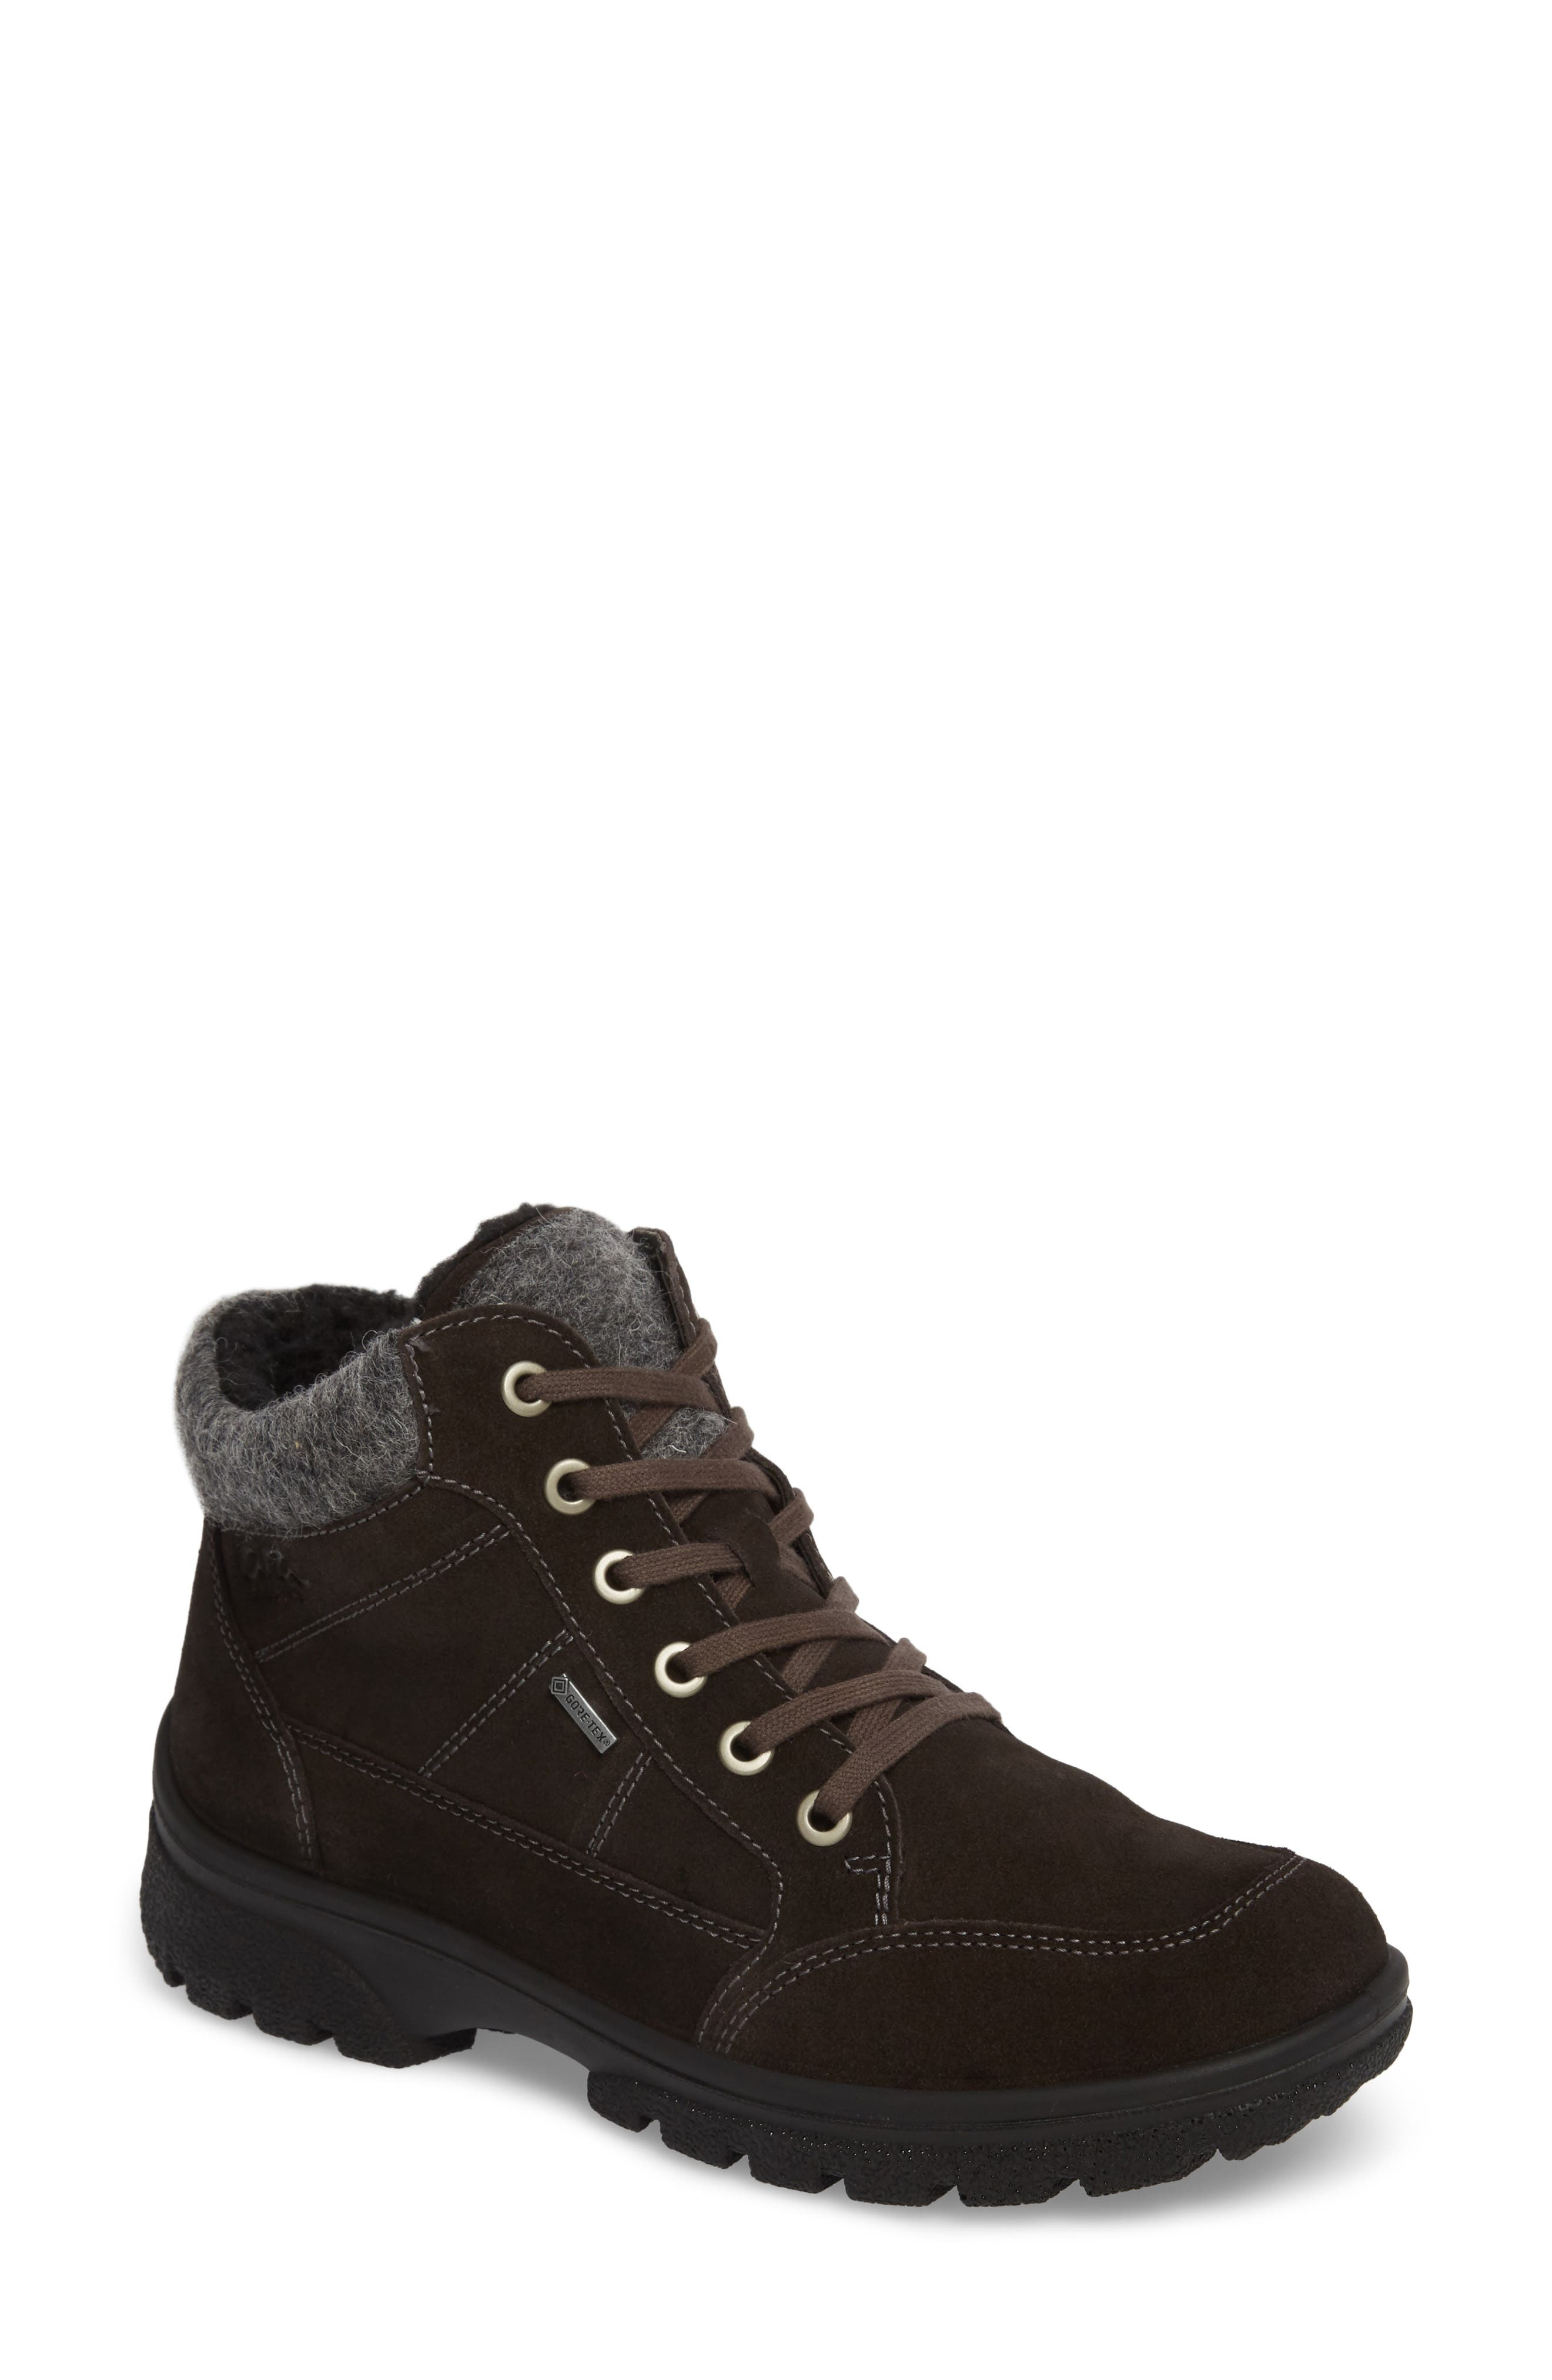 Waterproof Gore-Tex<sup>®</sup> Hiking Boot,                             Main thumbnail 1, color,                             LAVA SUEDE